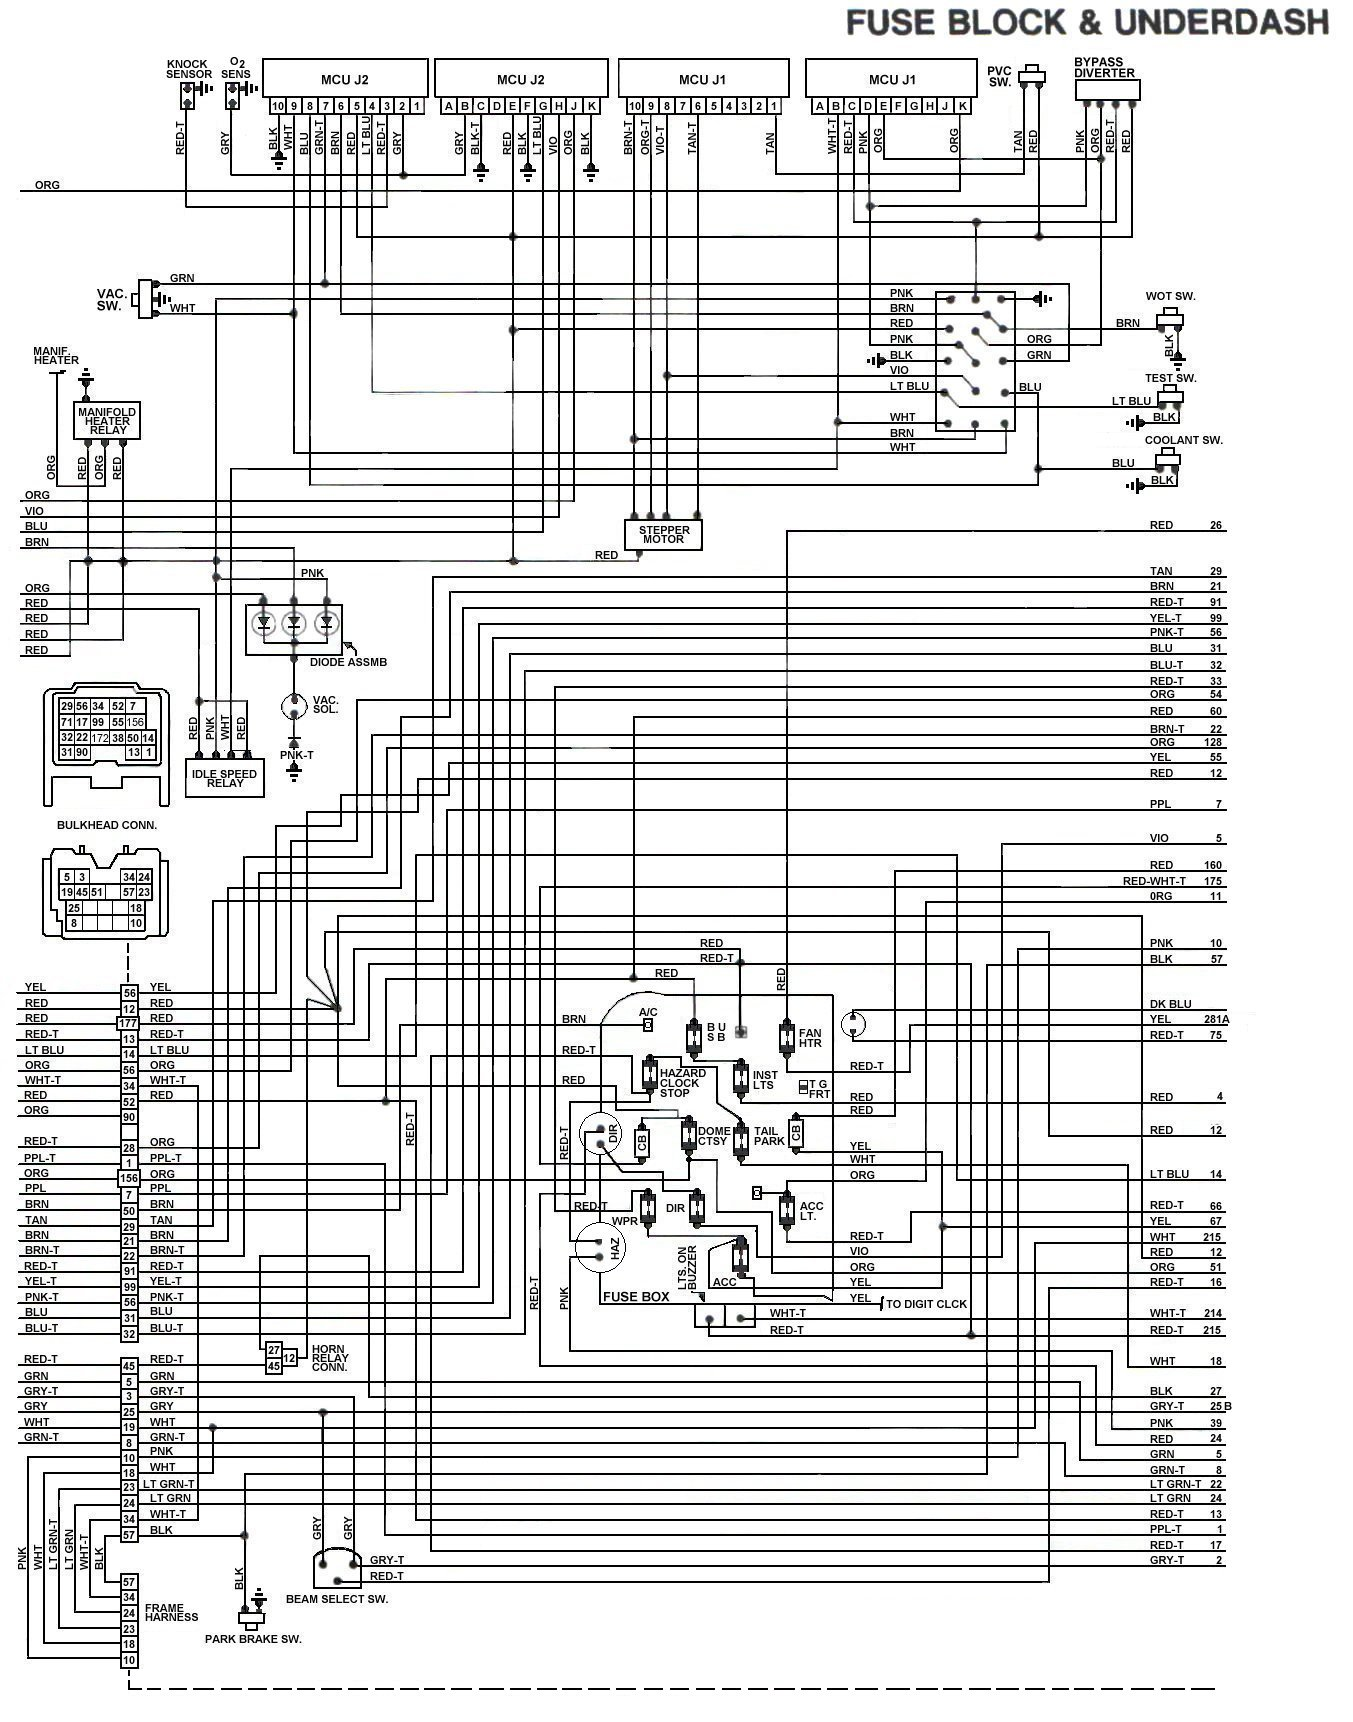 83_FSJ_WiringDiagram_FuseBlock Underdash tom 'oljeep' collins fsj wiring page wiring diagram for 1984 chevy c10 at bakdesigns.co